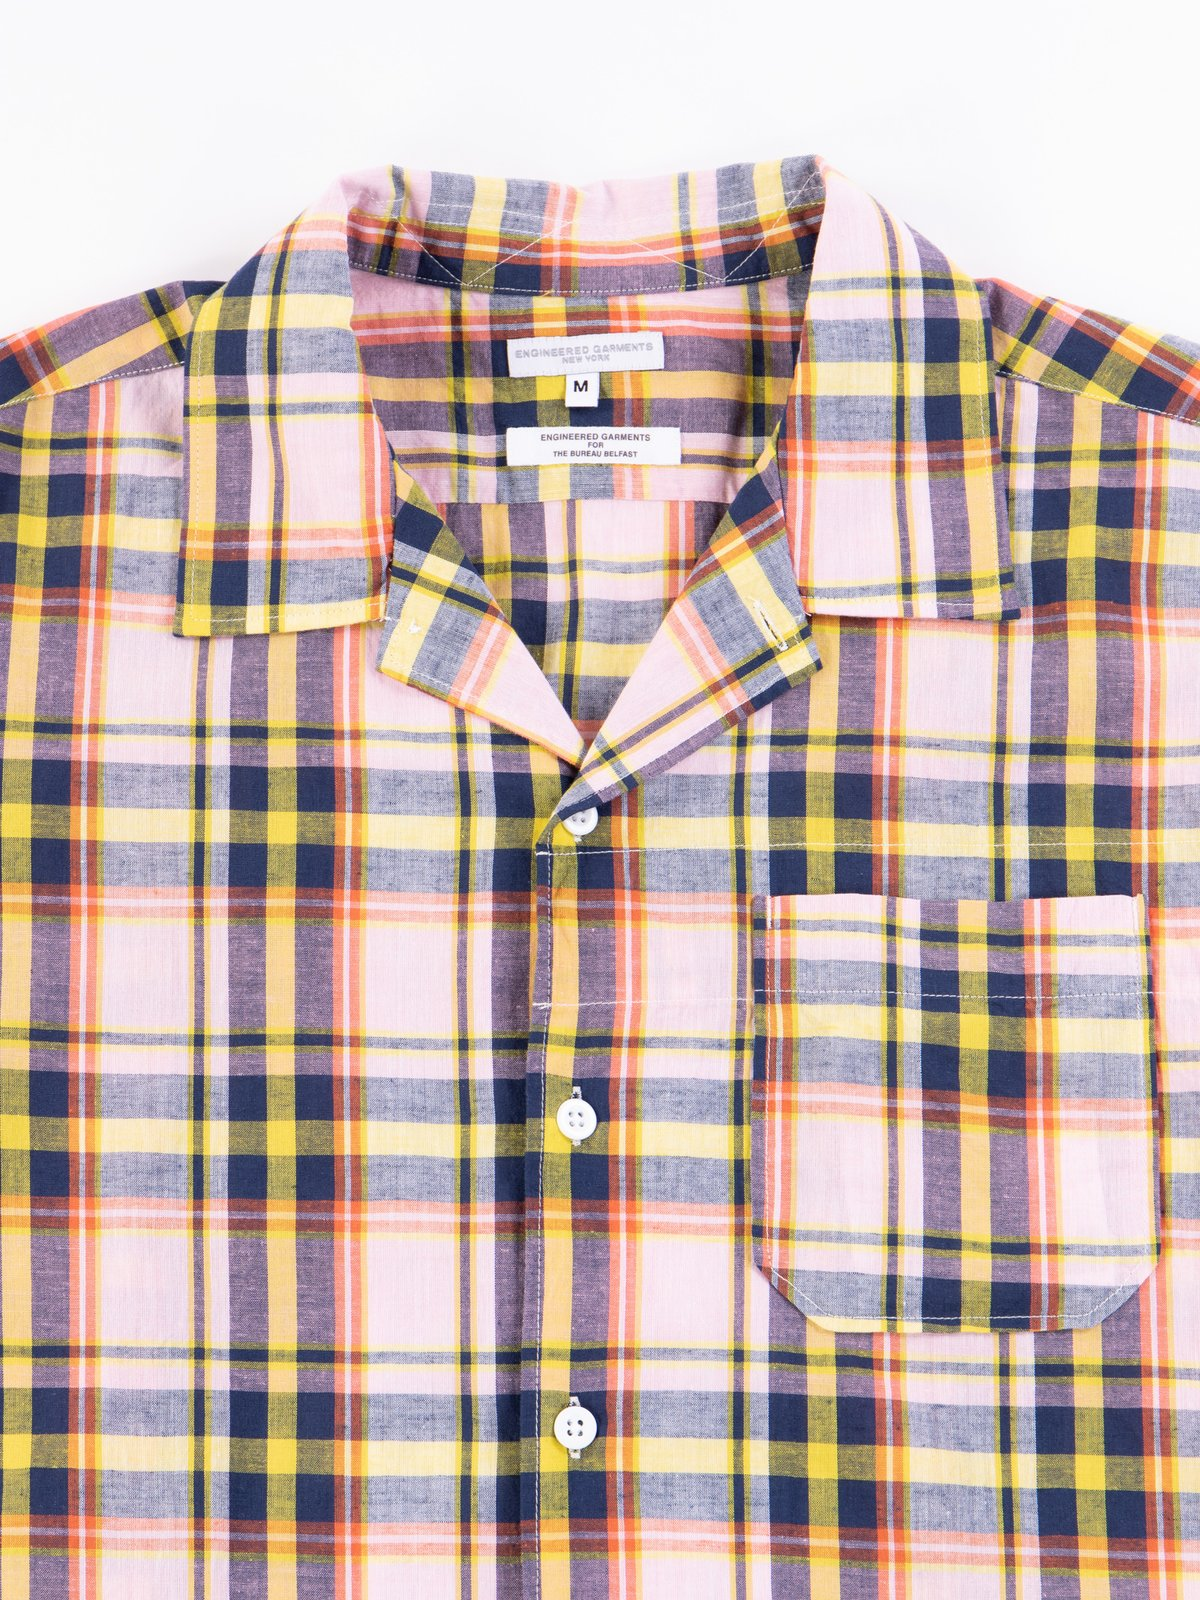 Pink/Yellow CL Madras Plaid Camp Shirt - Image 4